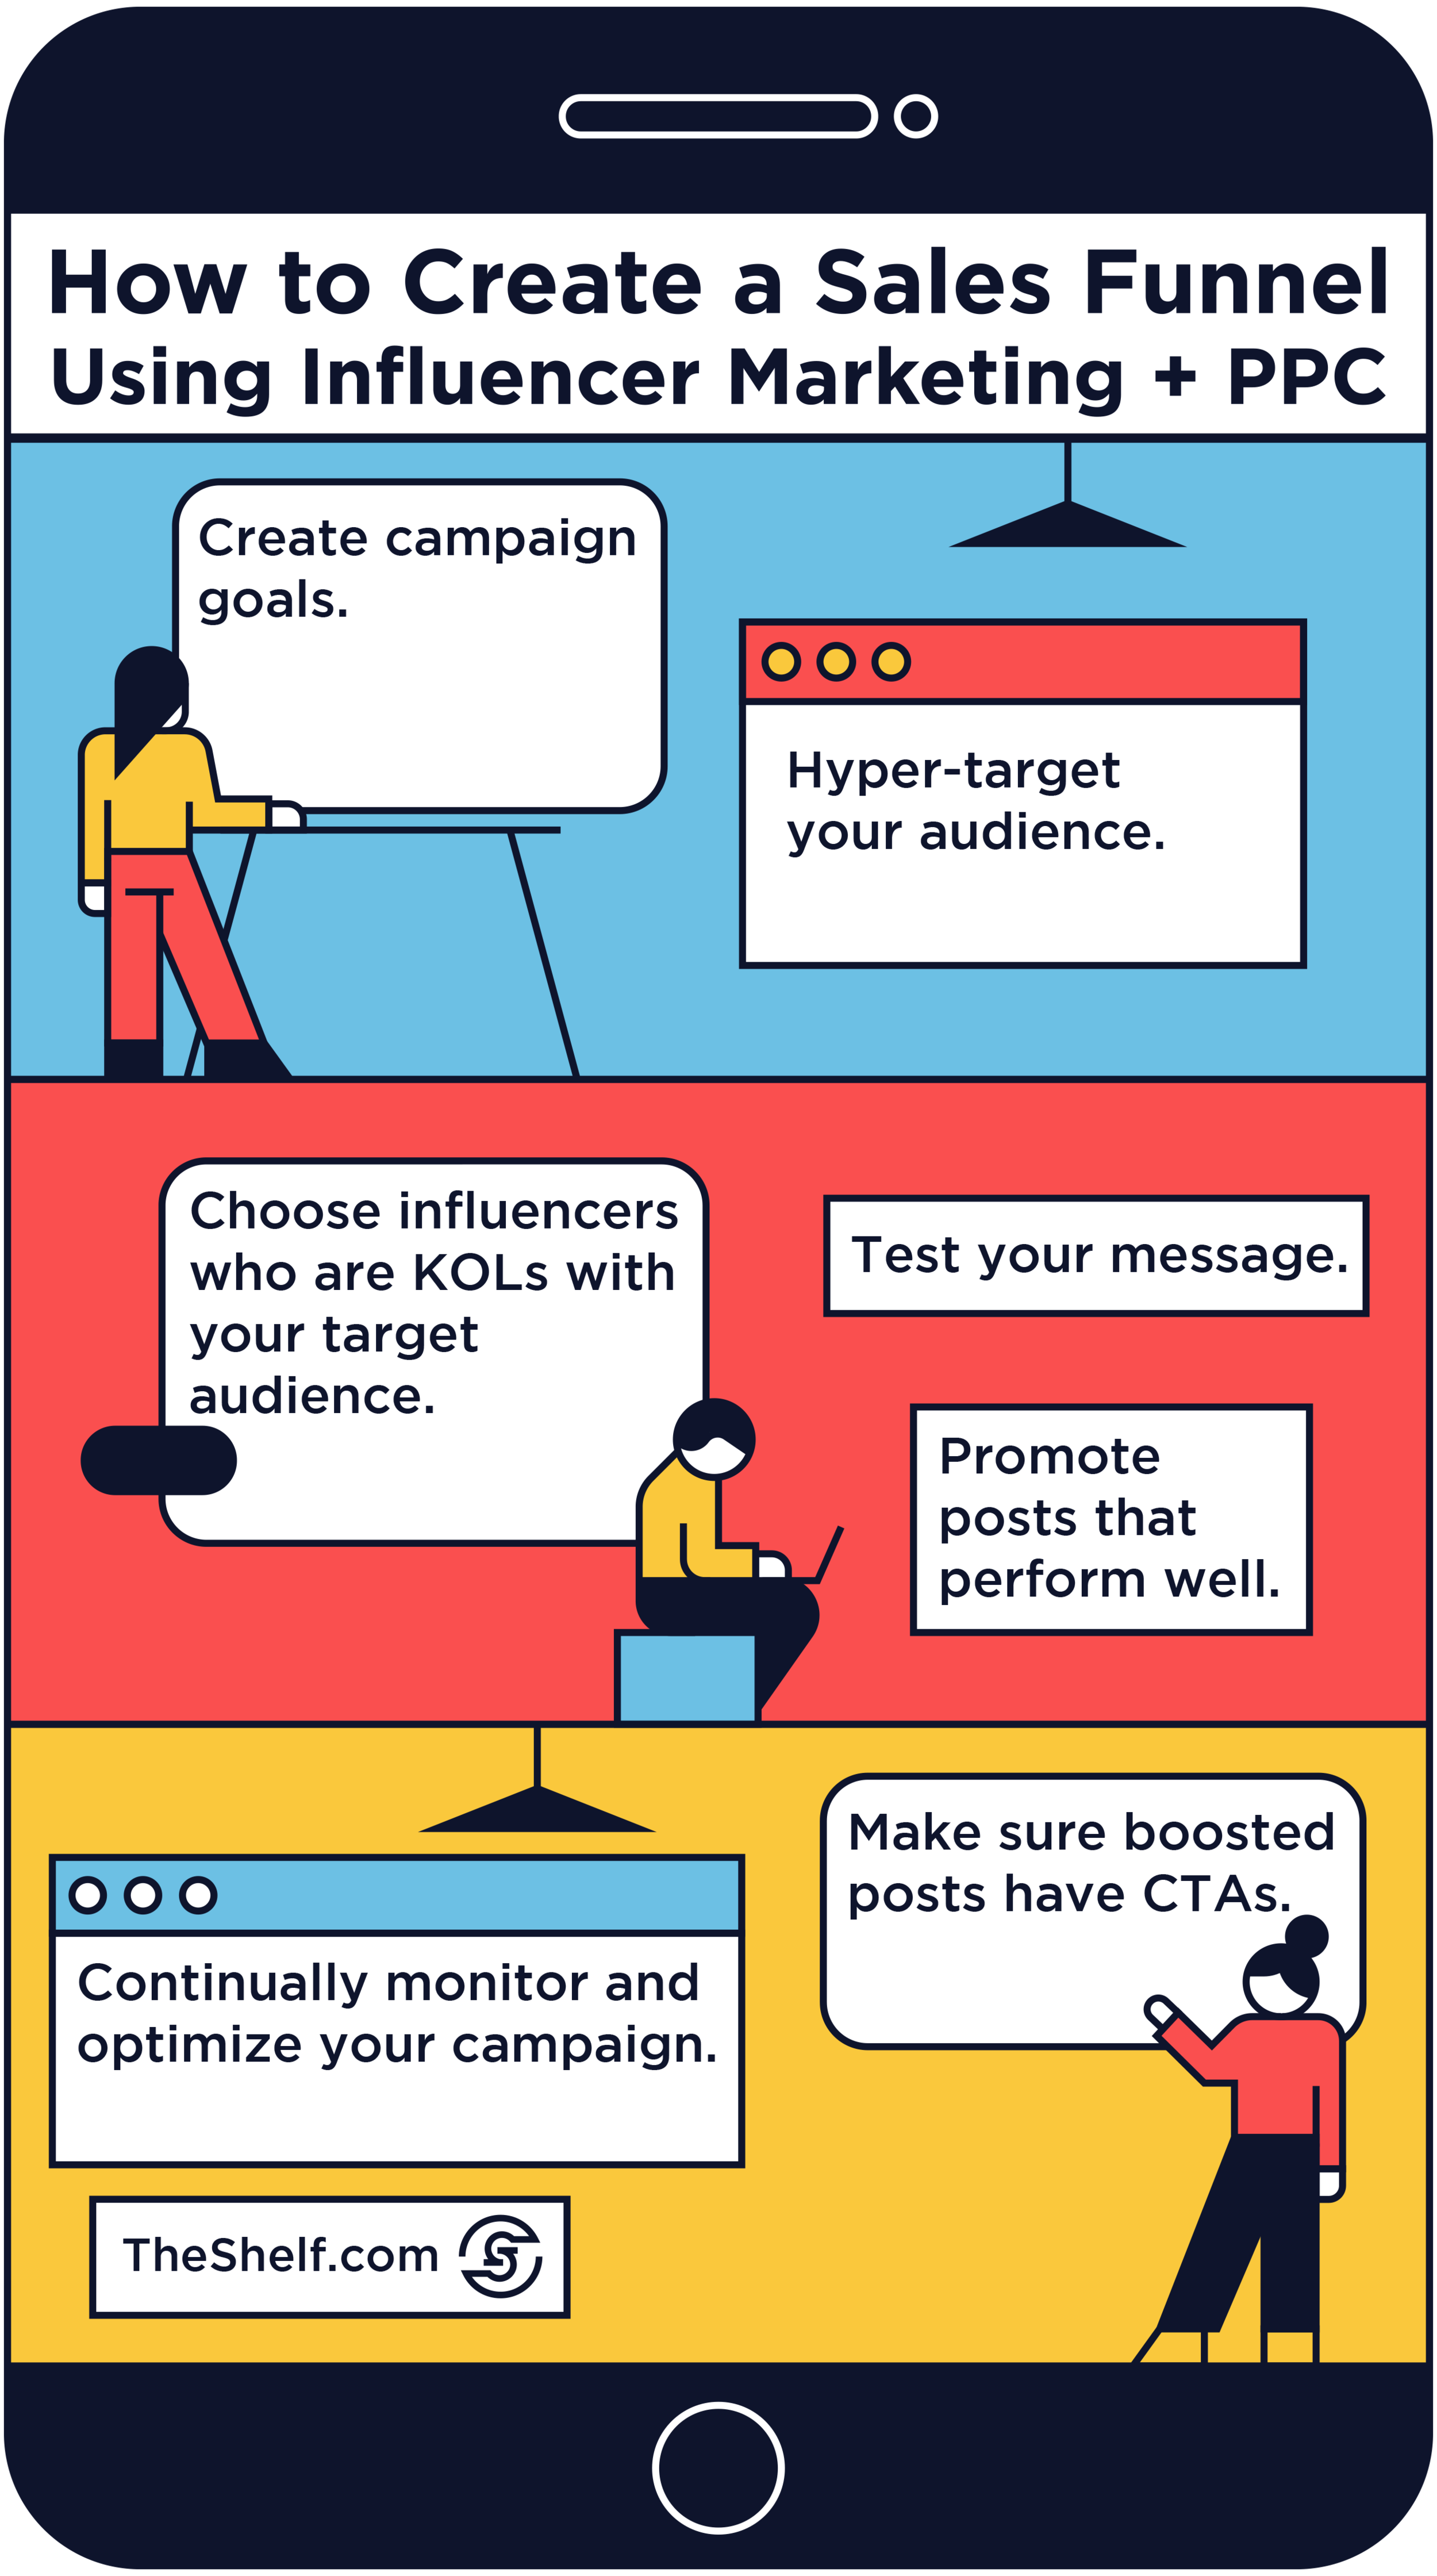 Infographic How to Create a Sales Funnel Using Influencer Marketing + PPC